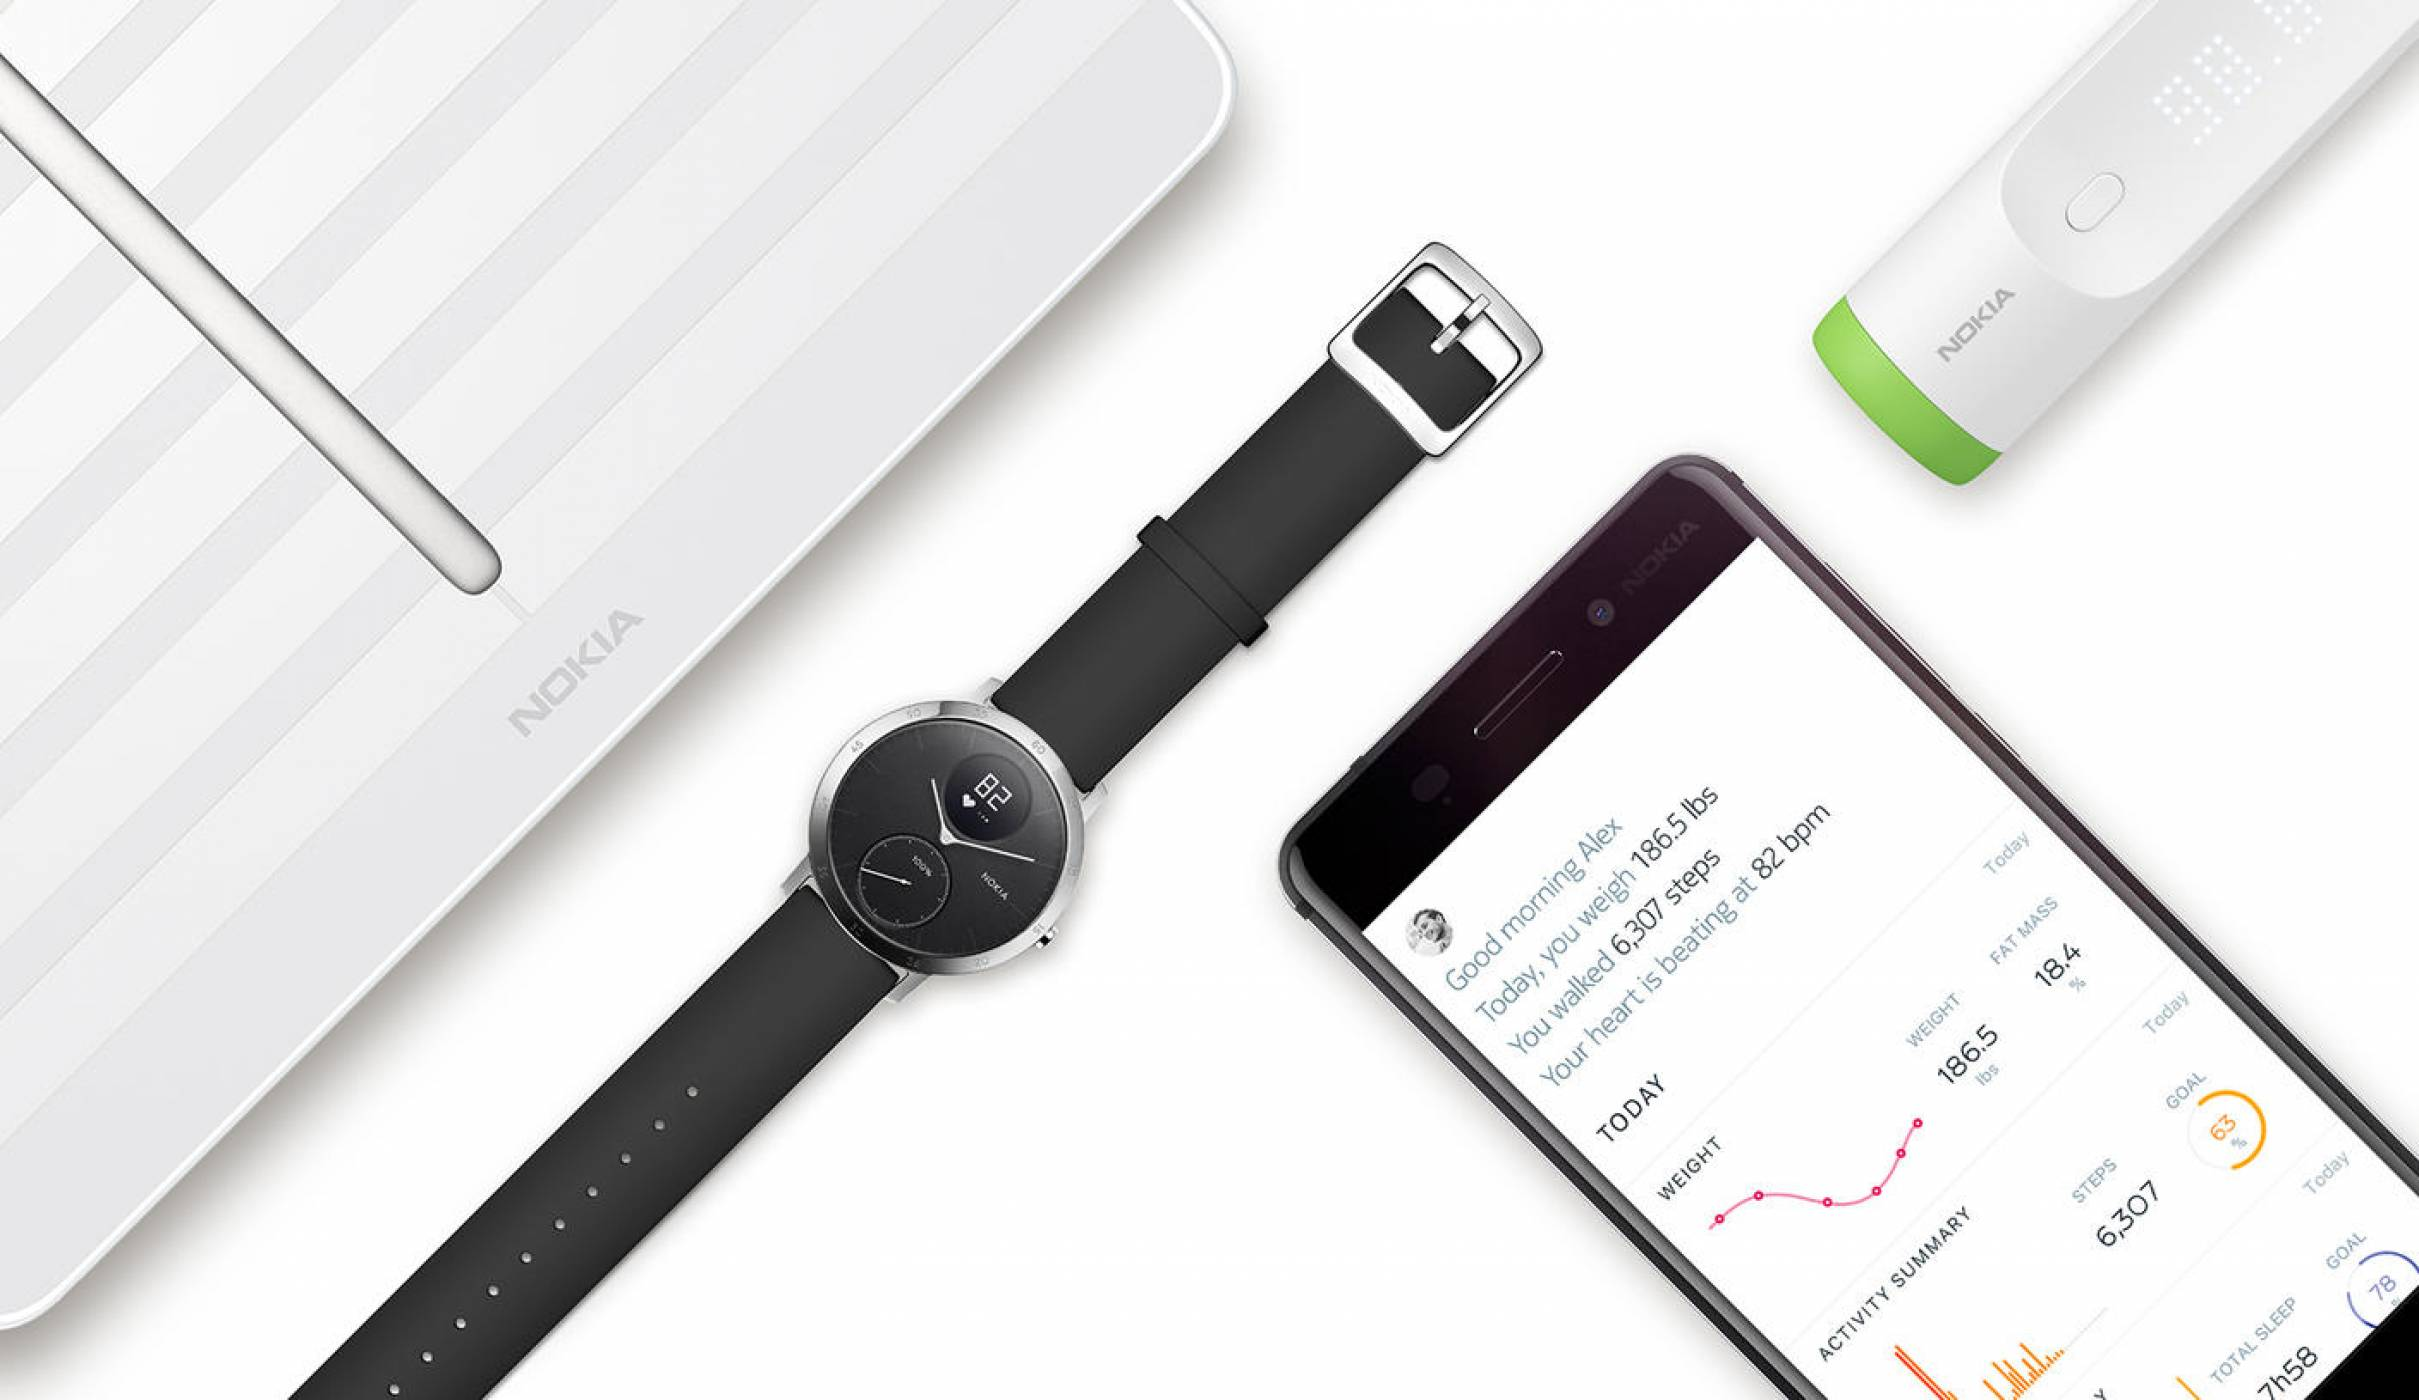 Продуктите на Withings вече са ребрандирани с името на Nokia